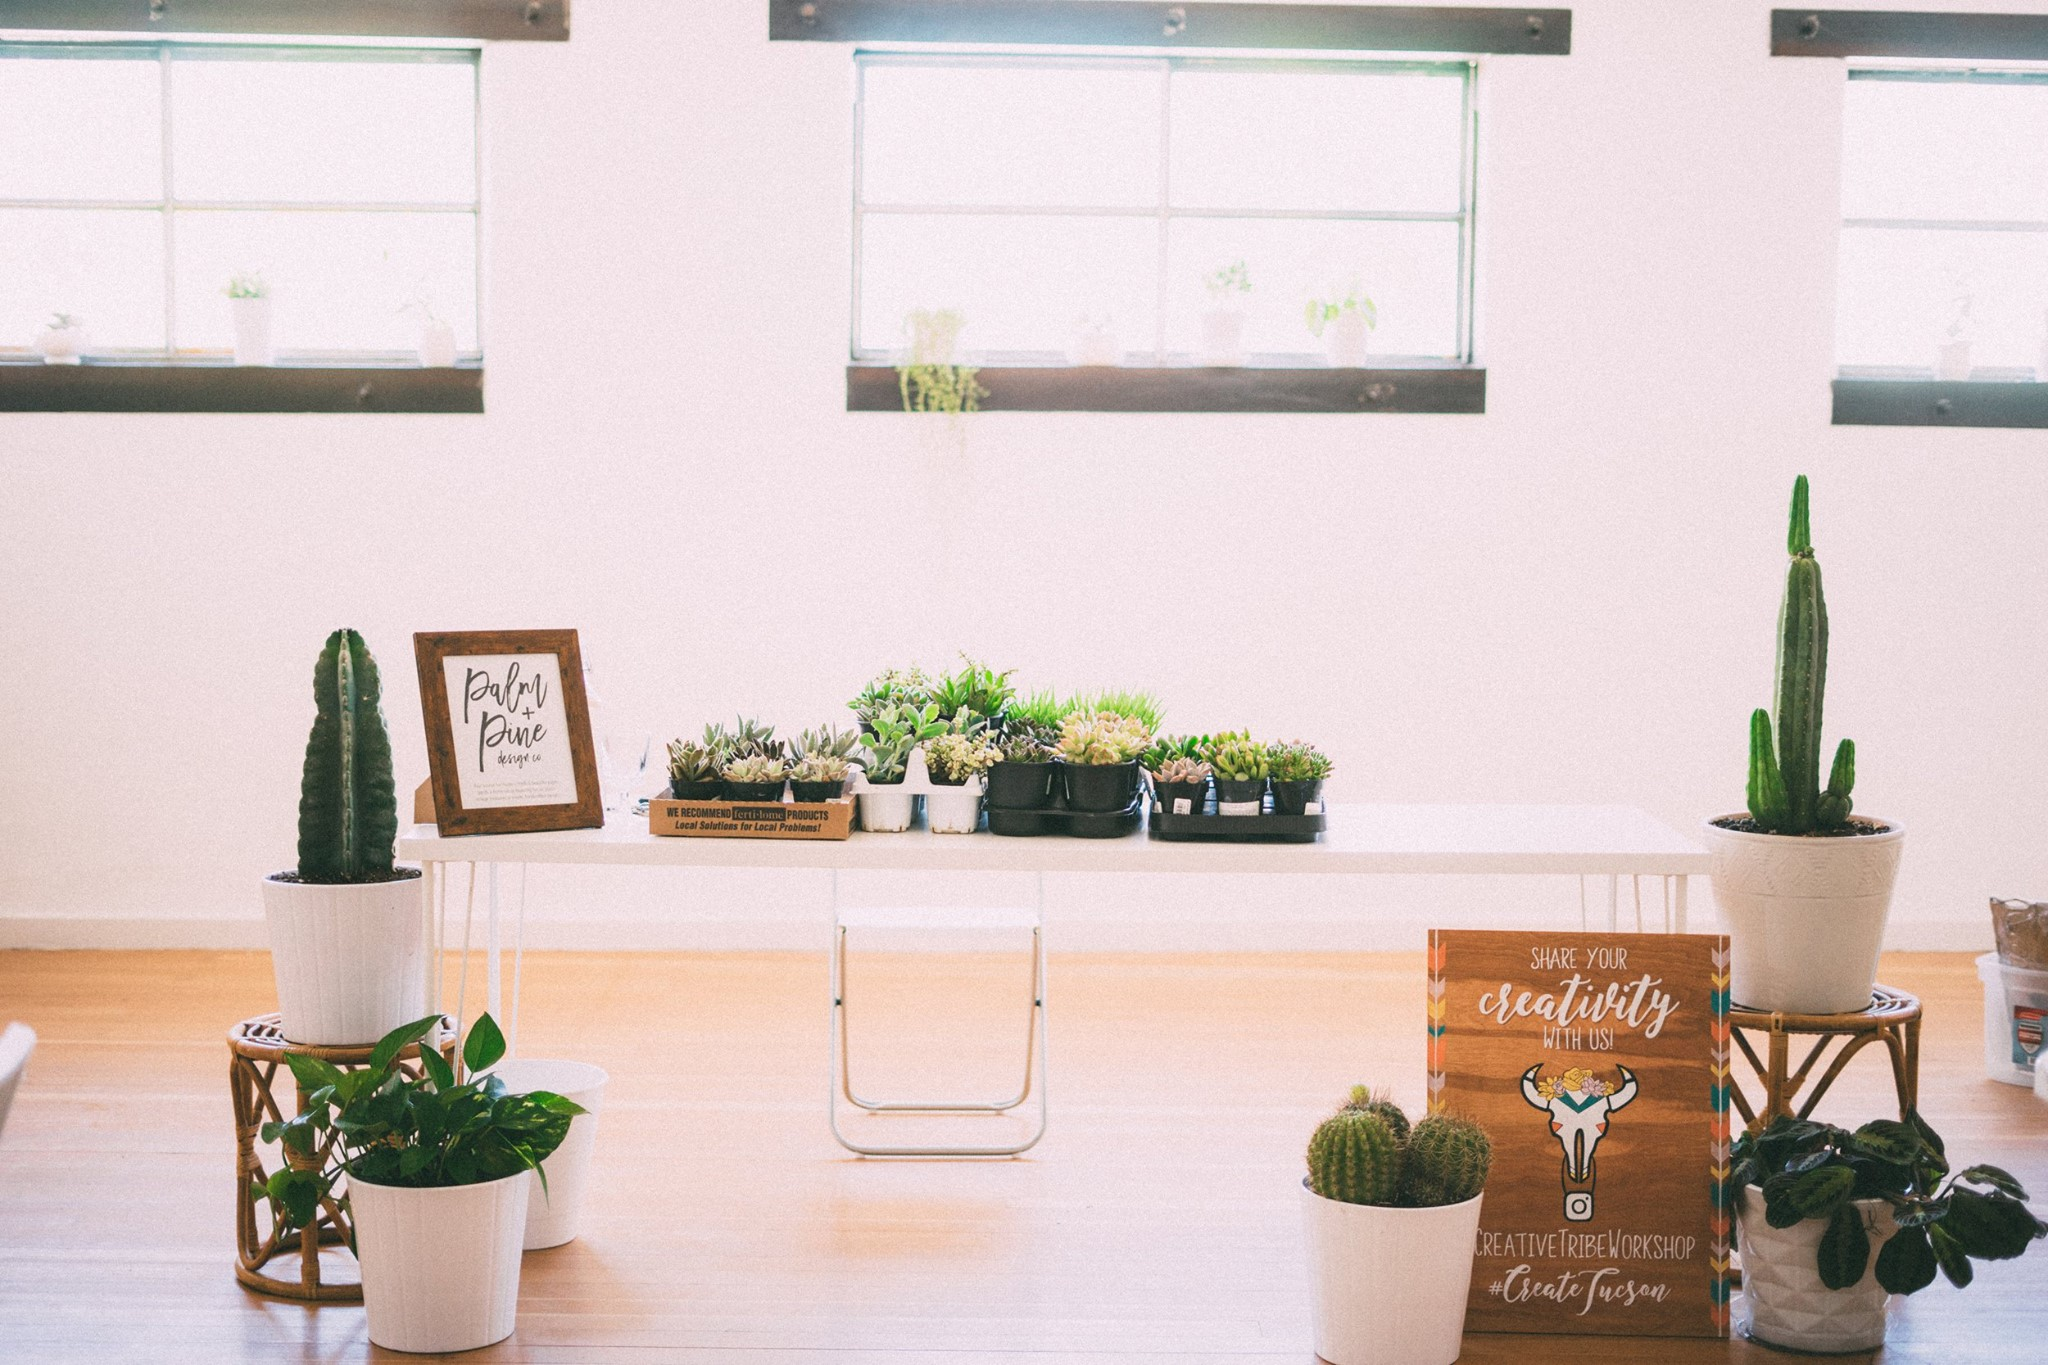 As Kalyn and the CT team prepared for our Succulent & Air Plant Terrarium  workshop, our studio was transformed into a lush green space.